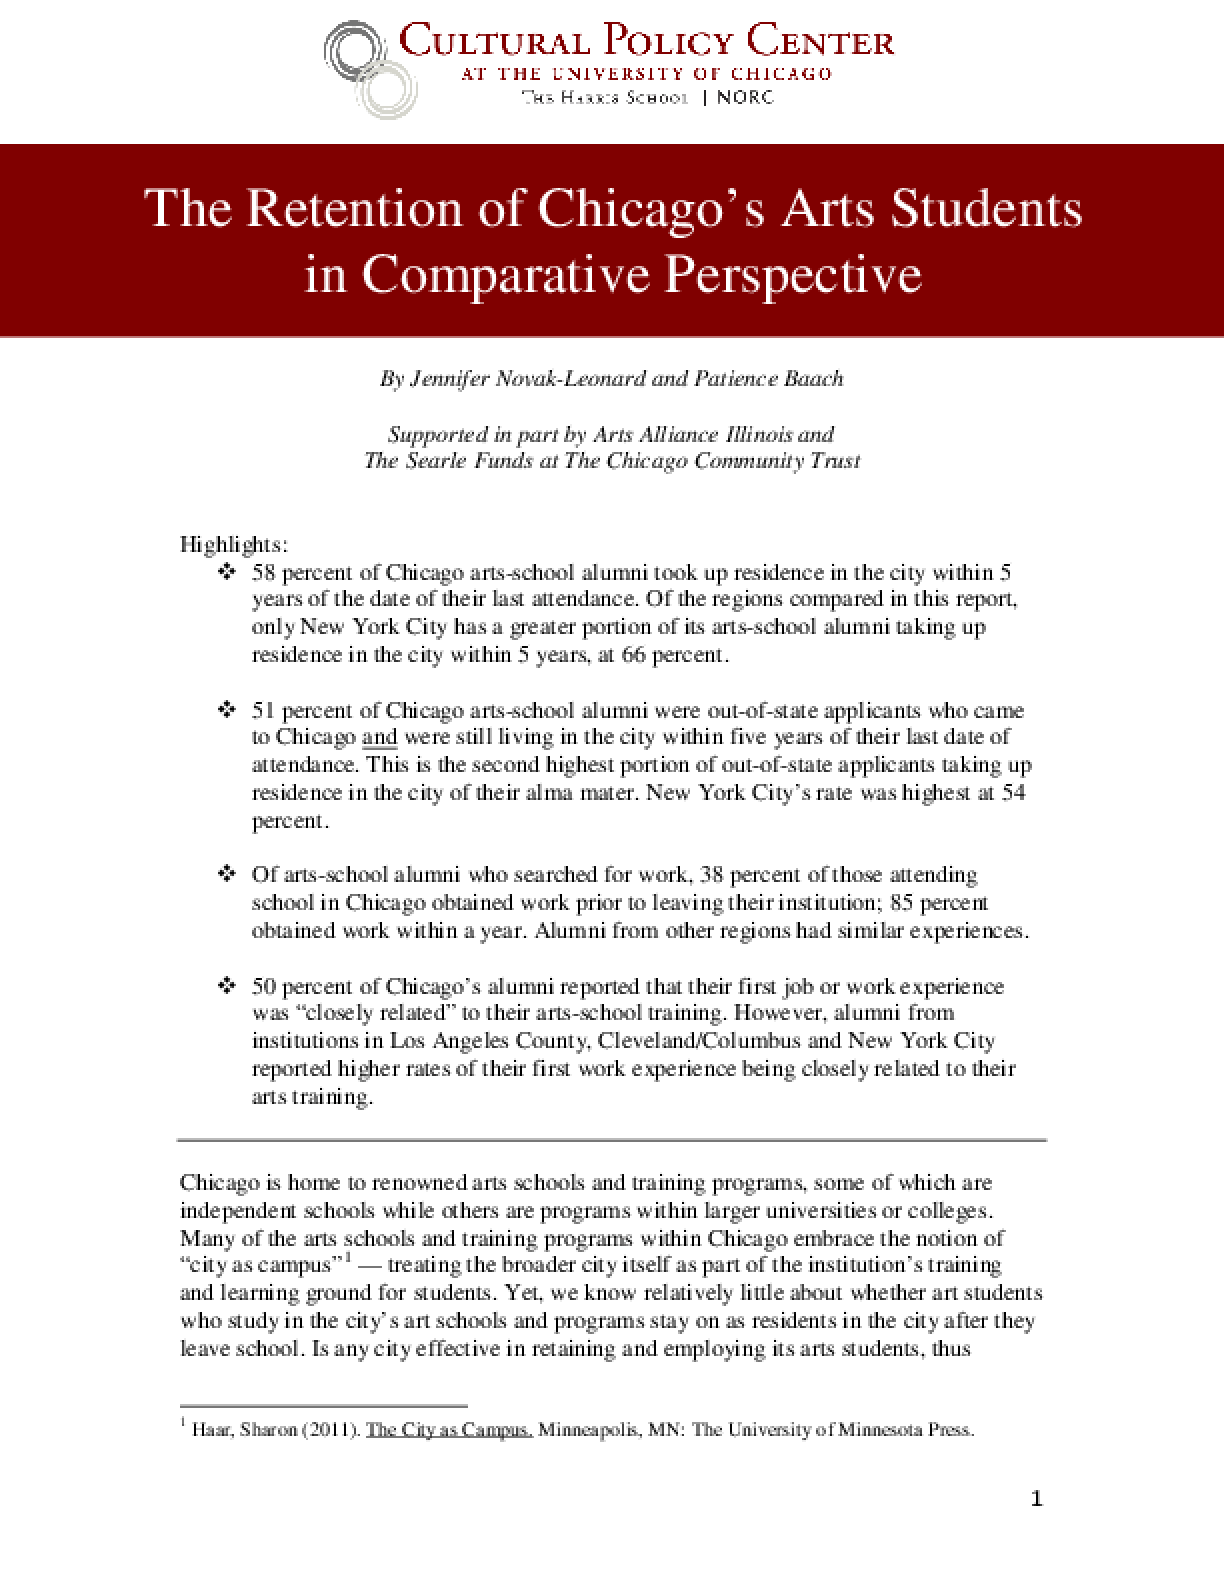 The Retention of Chicago's Arts Students in Comparative Perspective